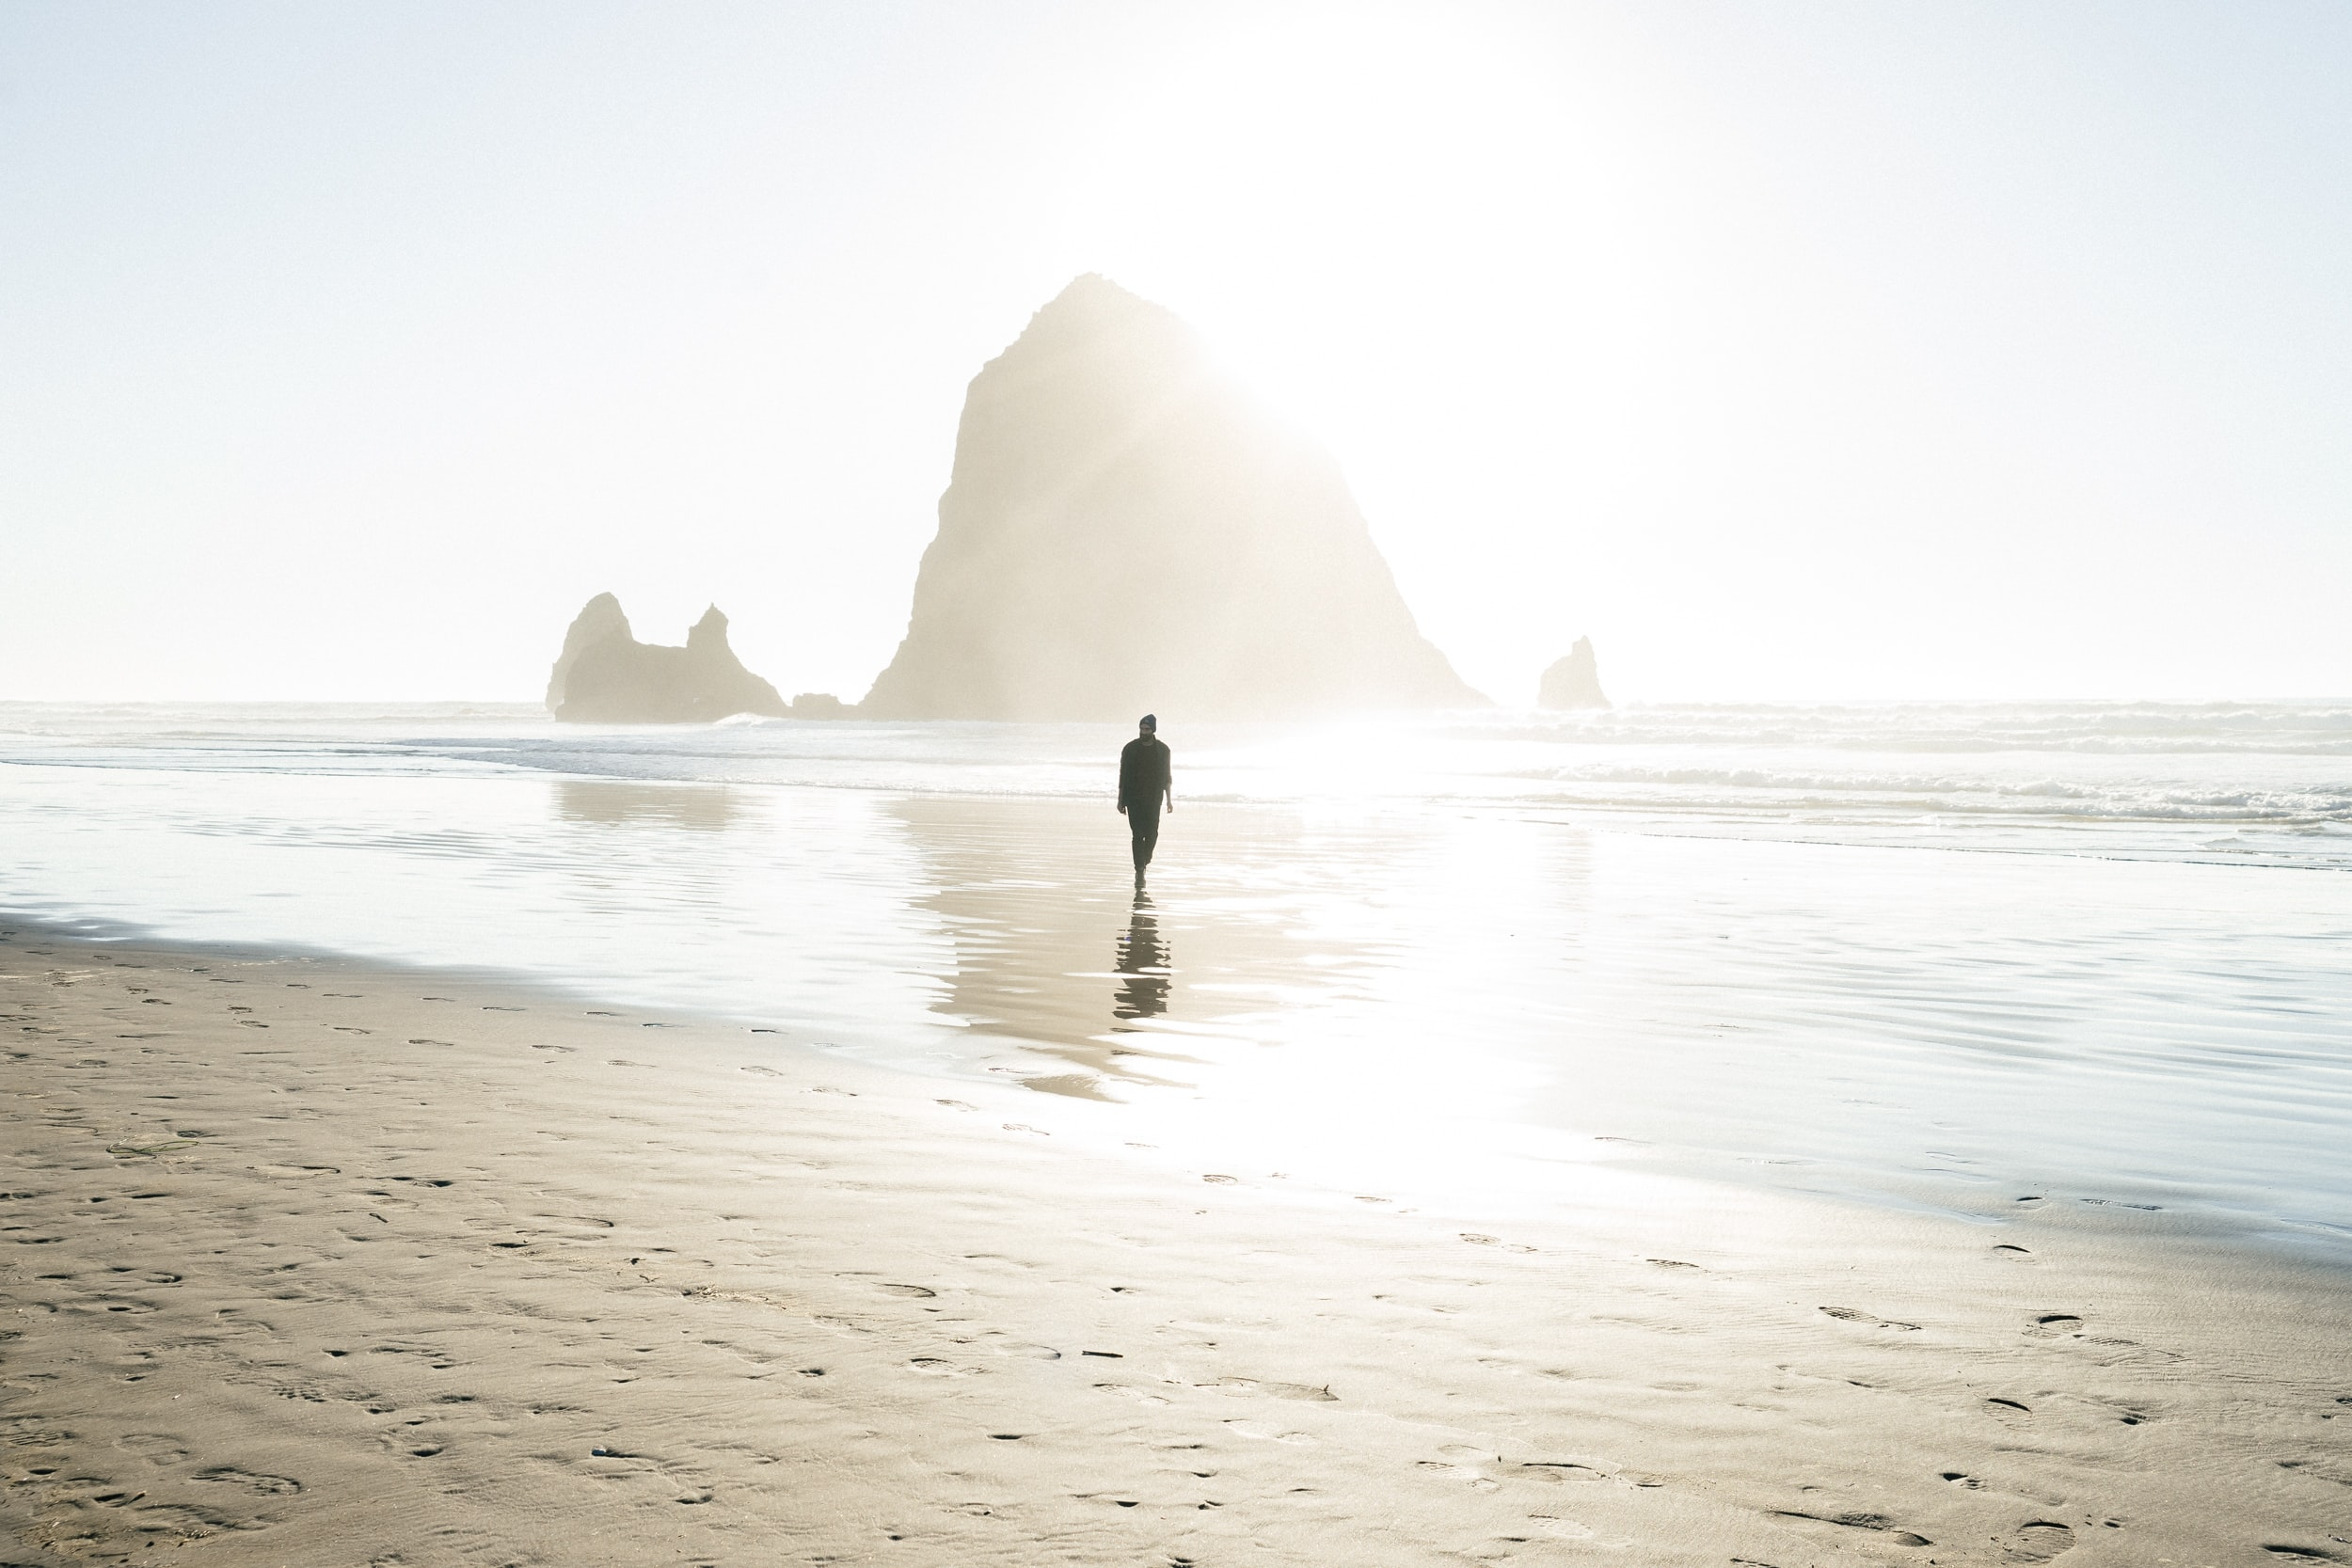 A silhouette of a man walking through the shallow water on a sandy beach